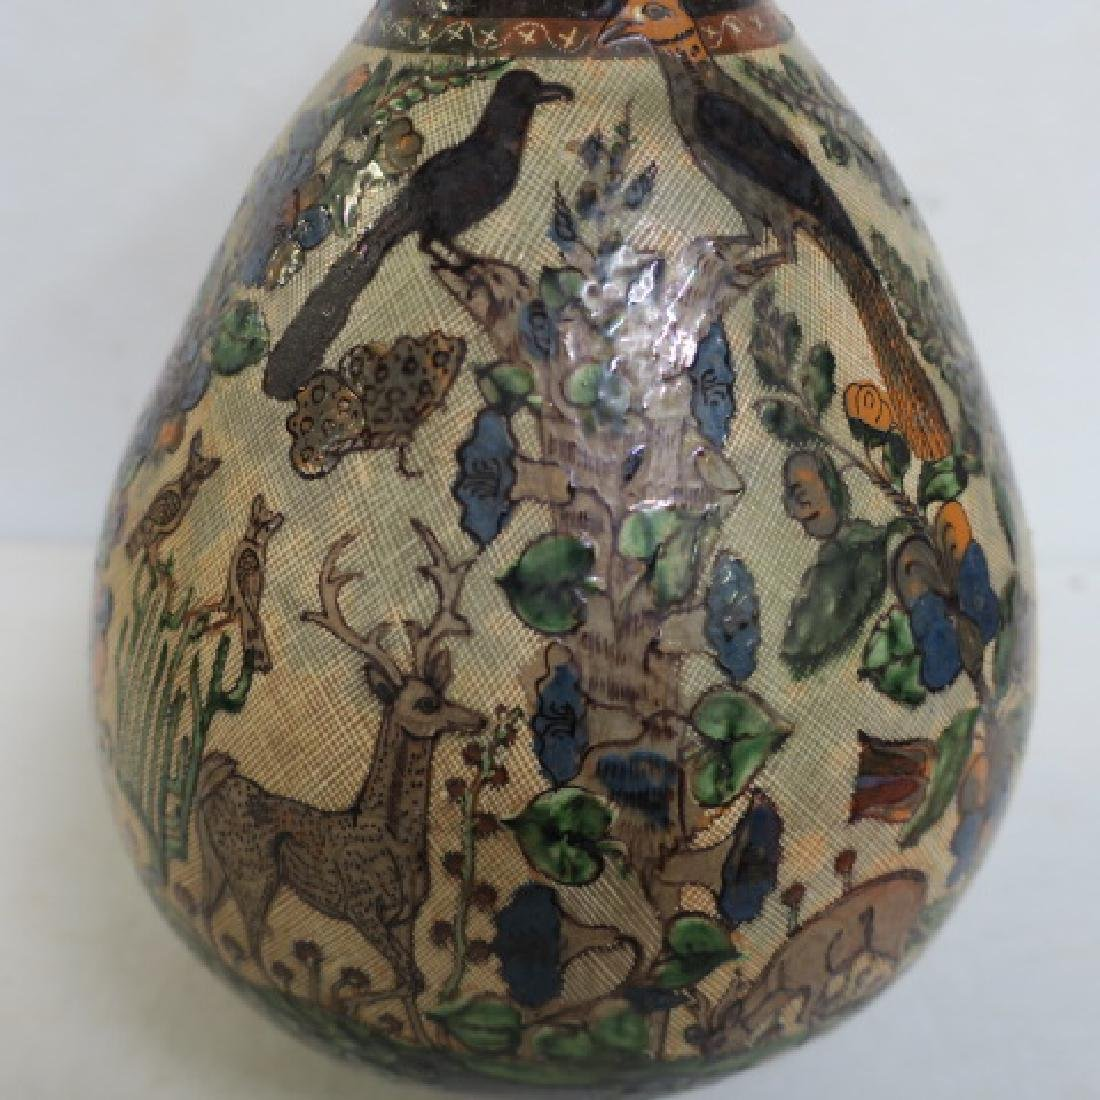 Hand Painted Long Neck Bulbous Vase: - 2